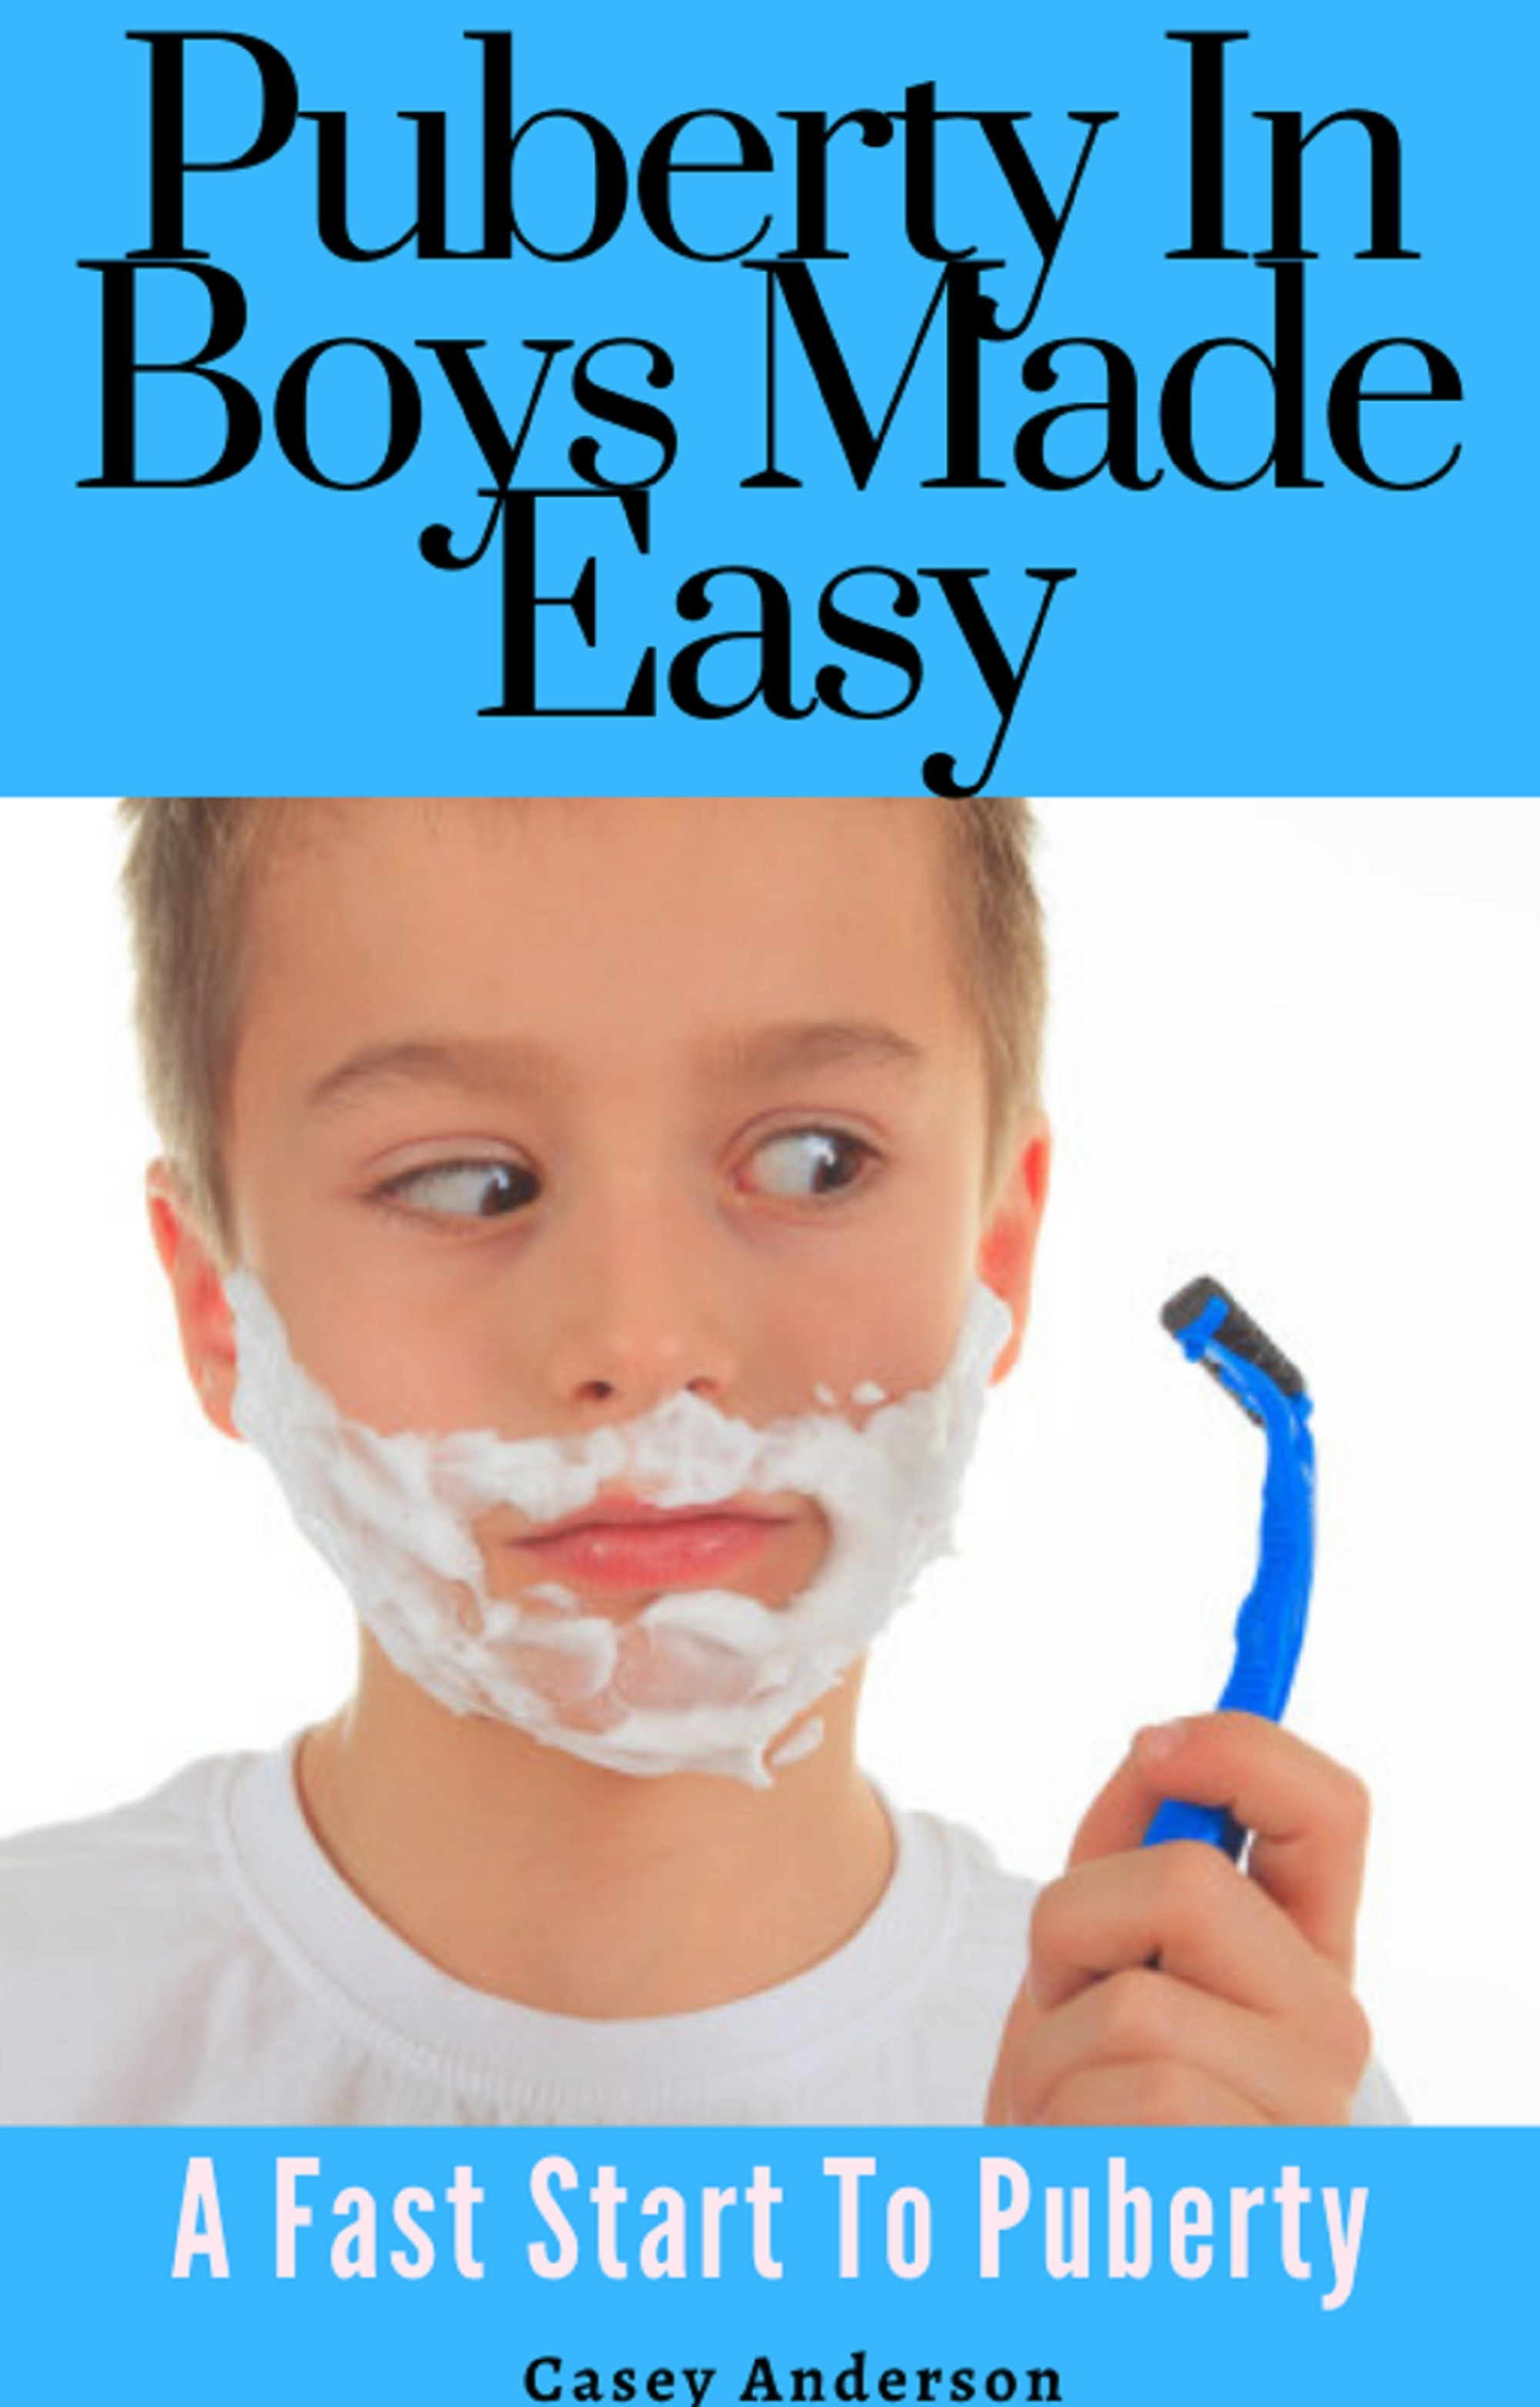 Puberty In Boys Made Easy: A Fast Start To Puberty